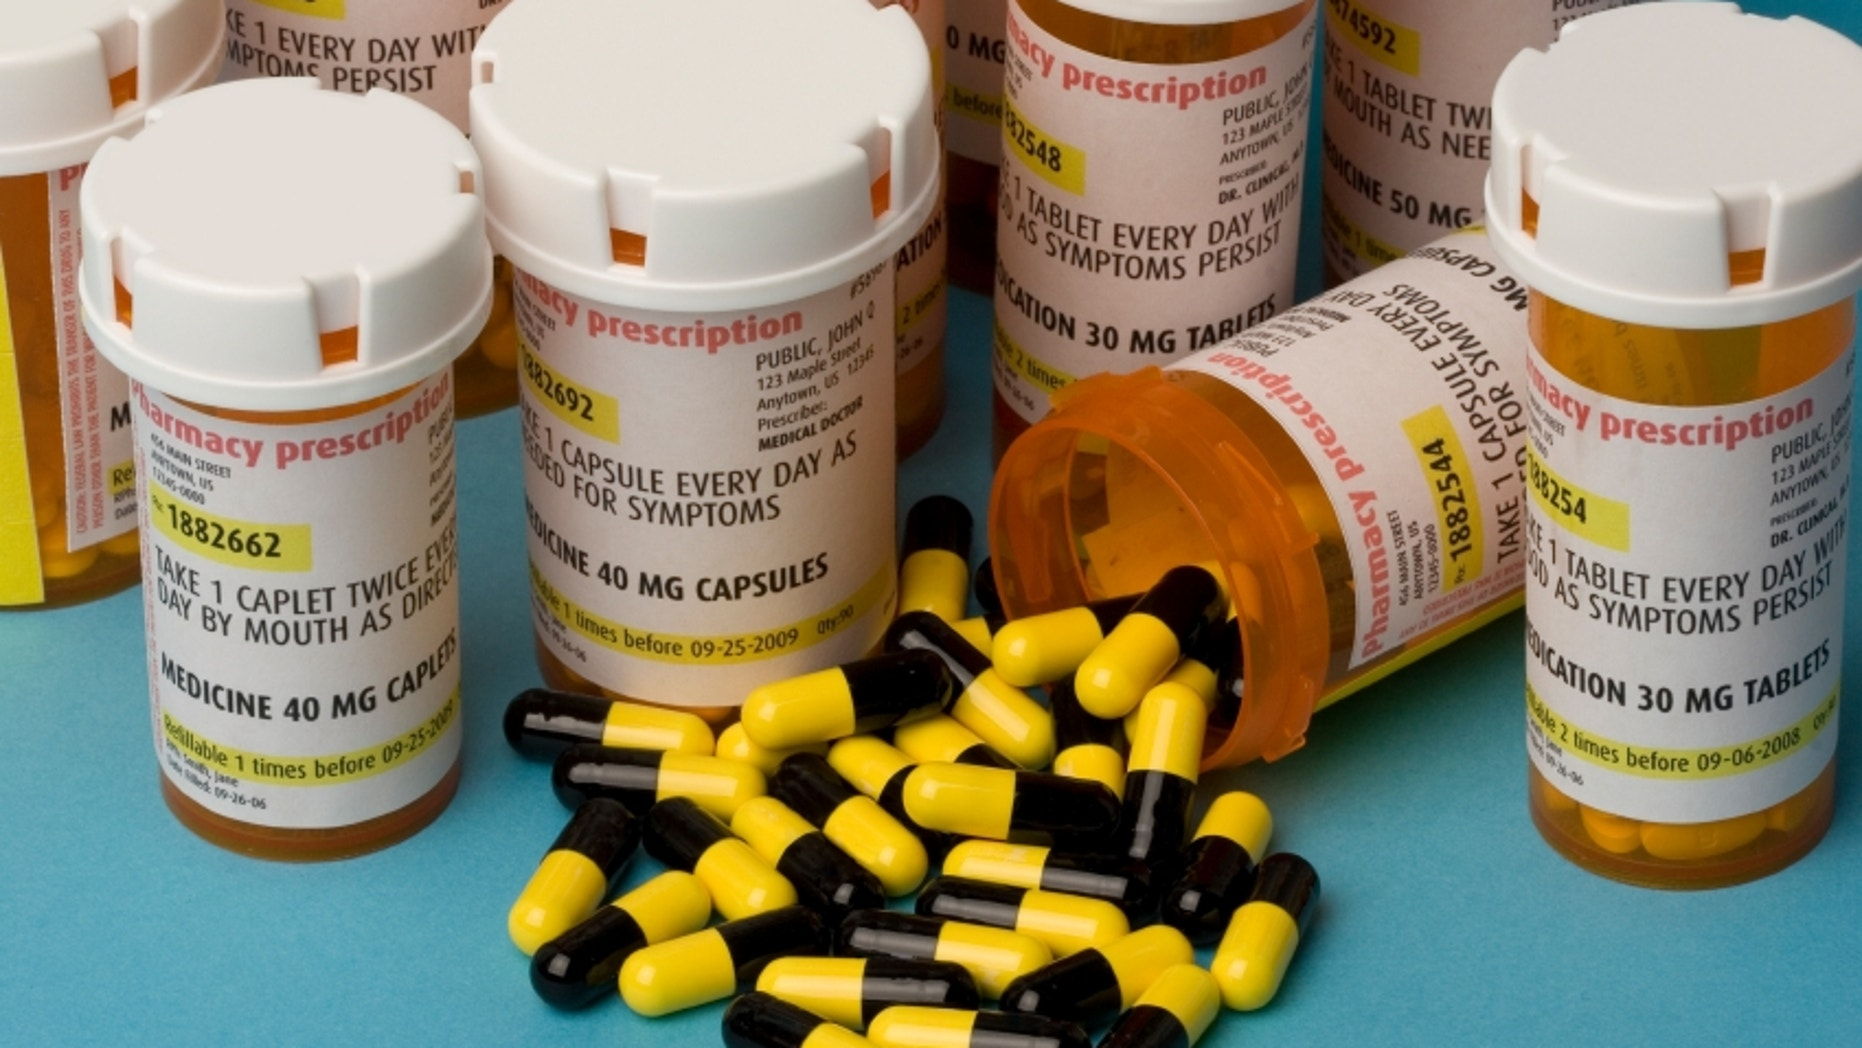 Bottles of prescription medication. Labels are fake, with false information.